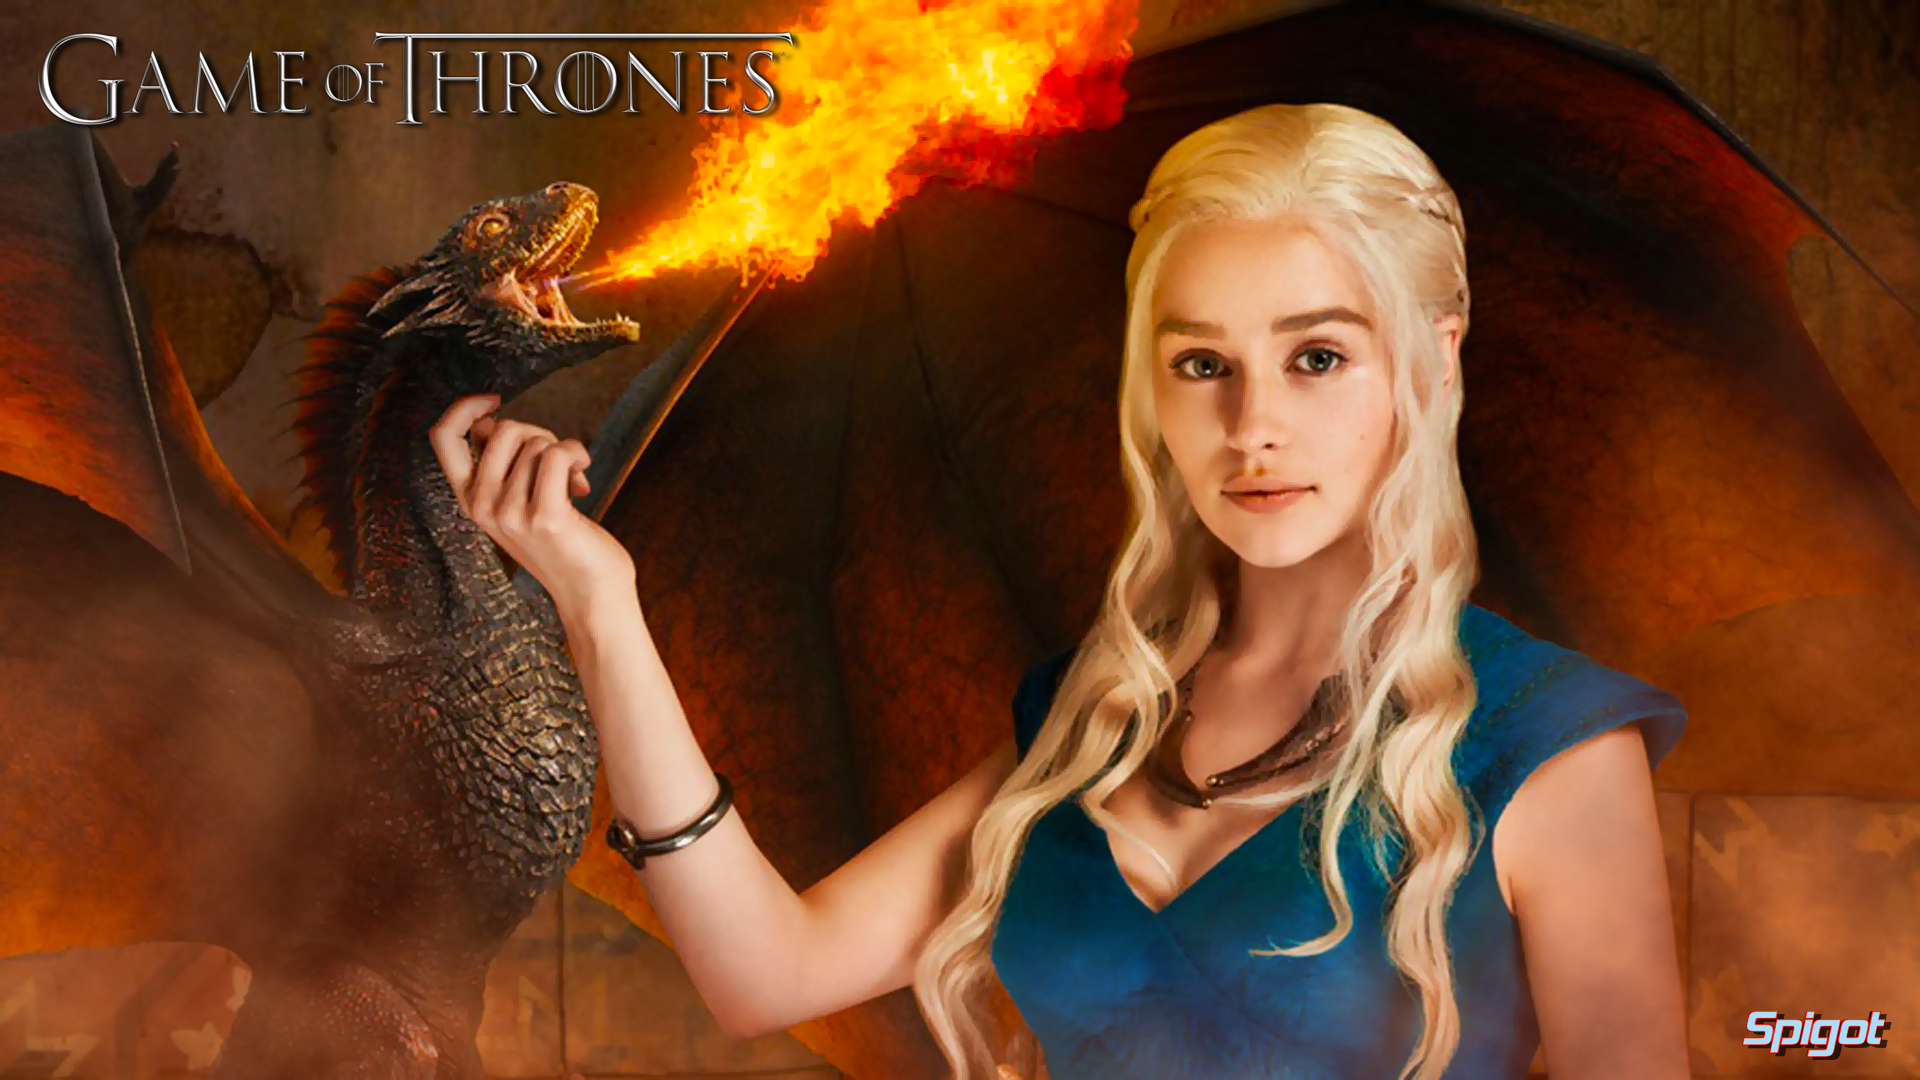 Game Of Thrones Daenerys Wallpaper: George Spigot's Blog